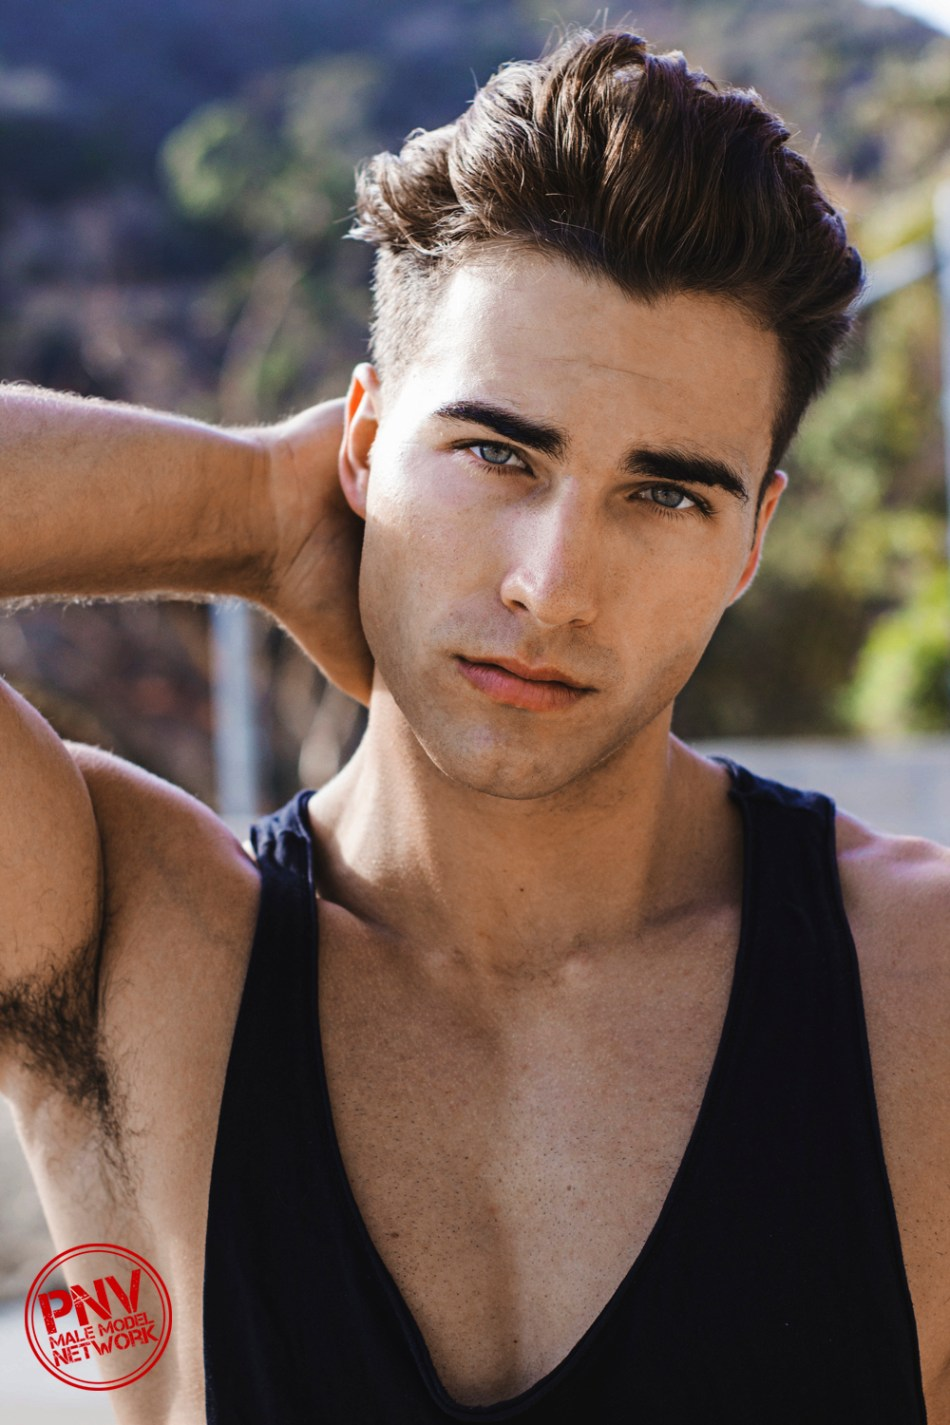 Nic Palladino by Adam Washington 1